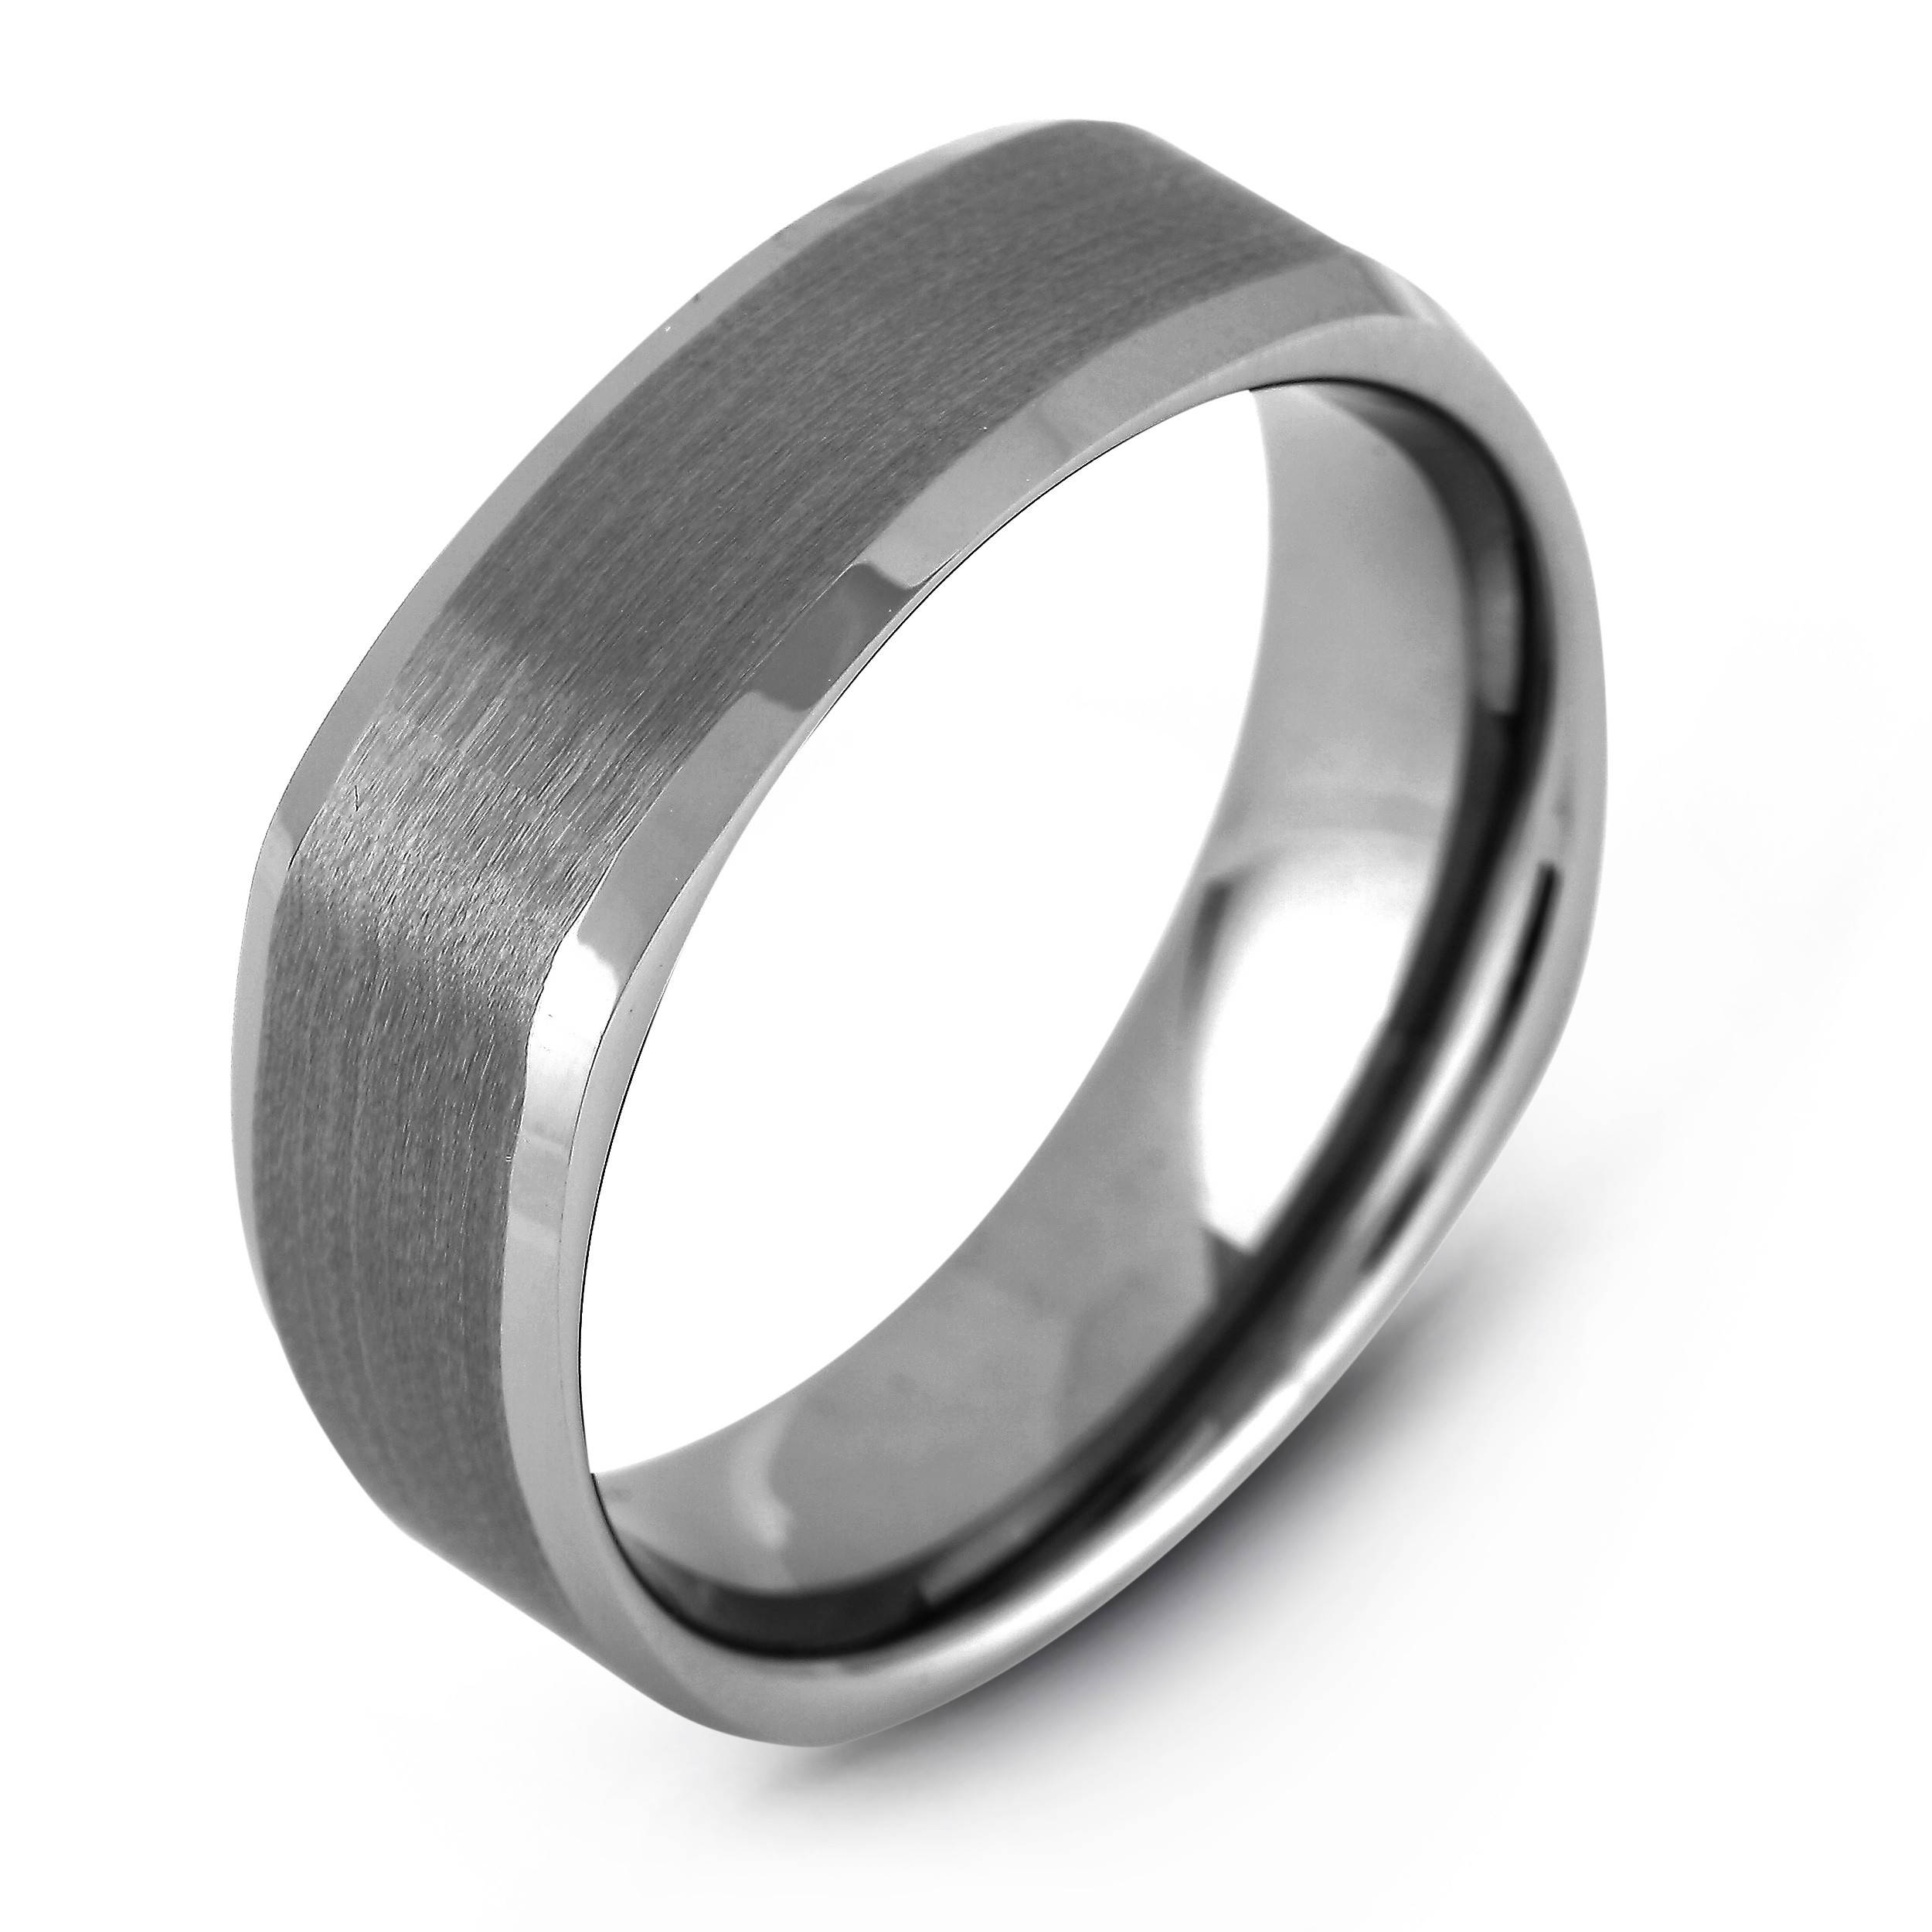 Wedding Rings : Unique Titanium Wedding Bands Wedding Bands For Within Mens Square Wedding Bands (View 15 of 15)